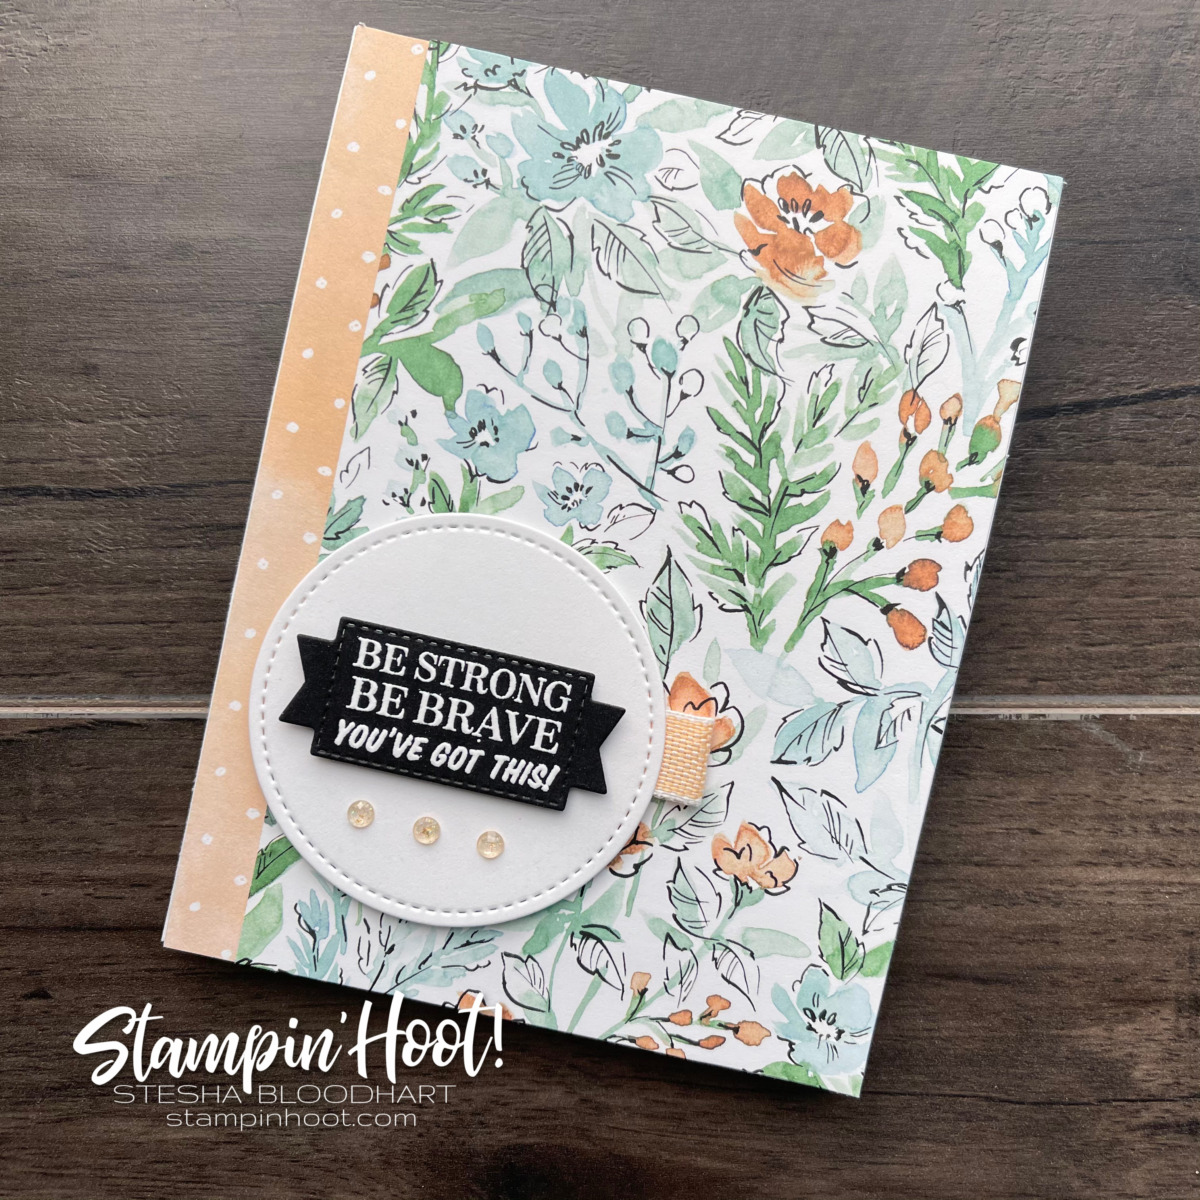 Many Messages Bundle from Stampin' Up! SNEAK PEEK! Hand-Penned Suite Available May 4 Be Strong Card By Stesha Bloodhart, Stampin' Hoot!